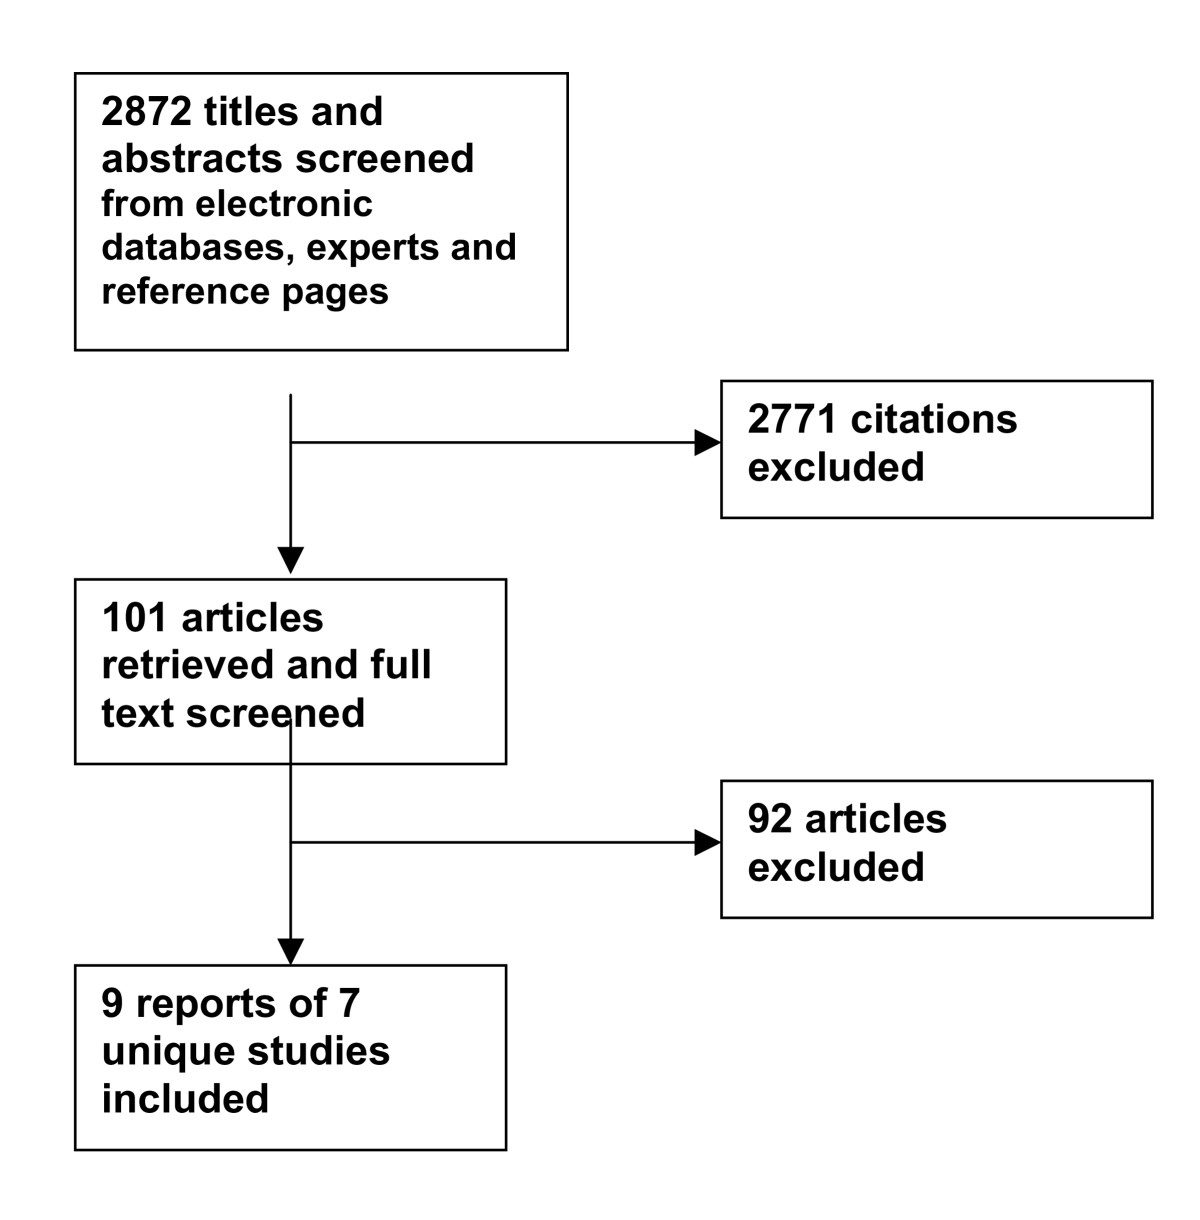 https://static-content.springer.com/image/art%3A10.1186%2F1475-2891-4-13/MediaObjects/12937_2004_Article_60_Fig1_HTML.jpg